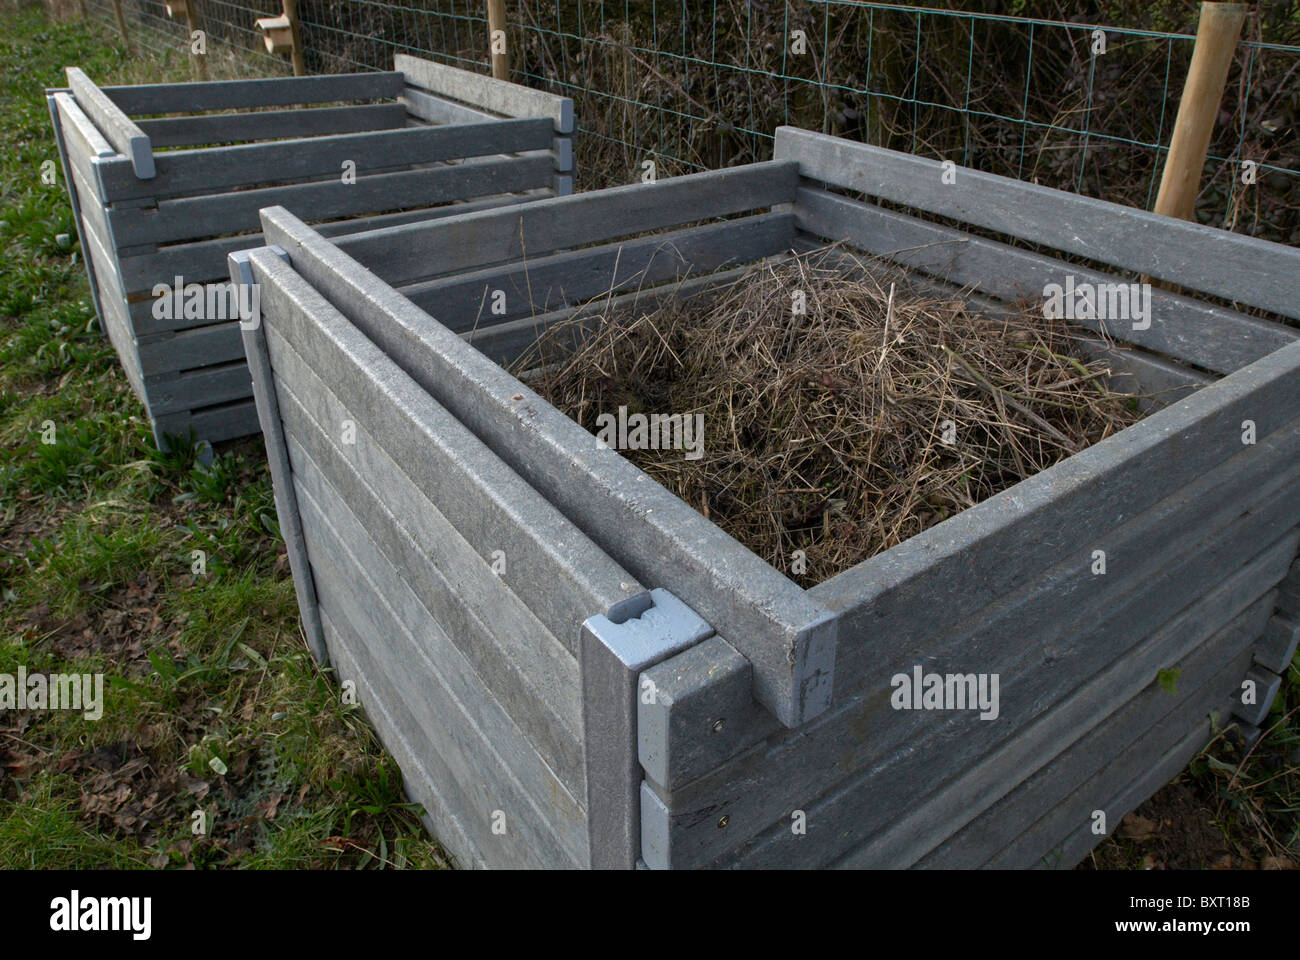 Recycled plastic compost bins - Stock Image